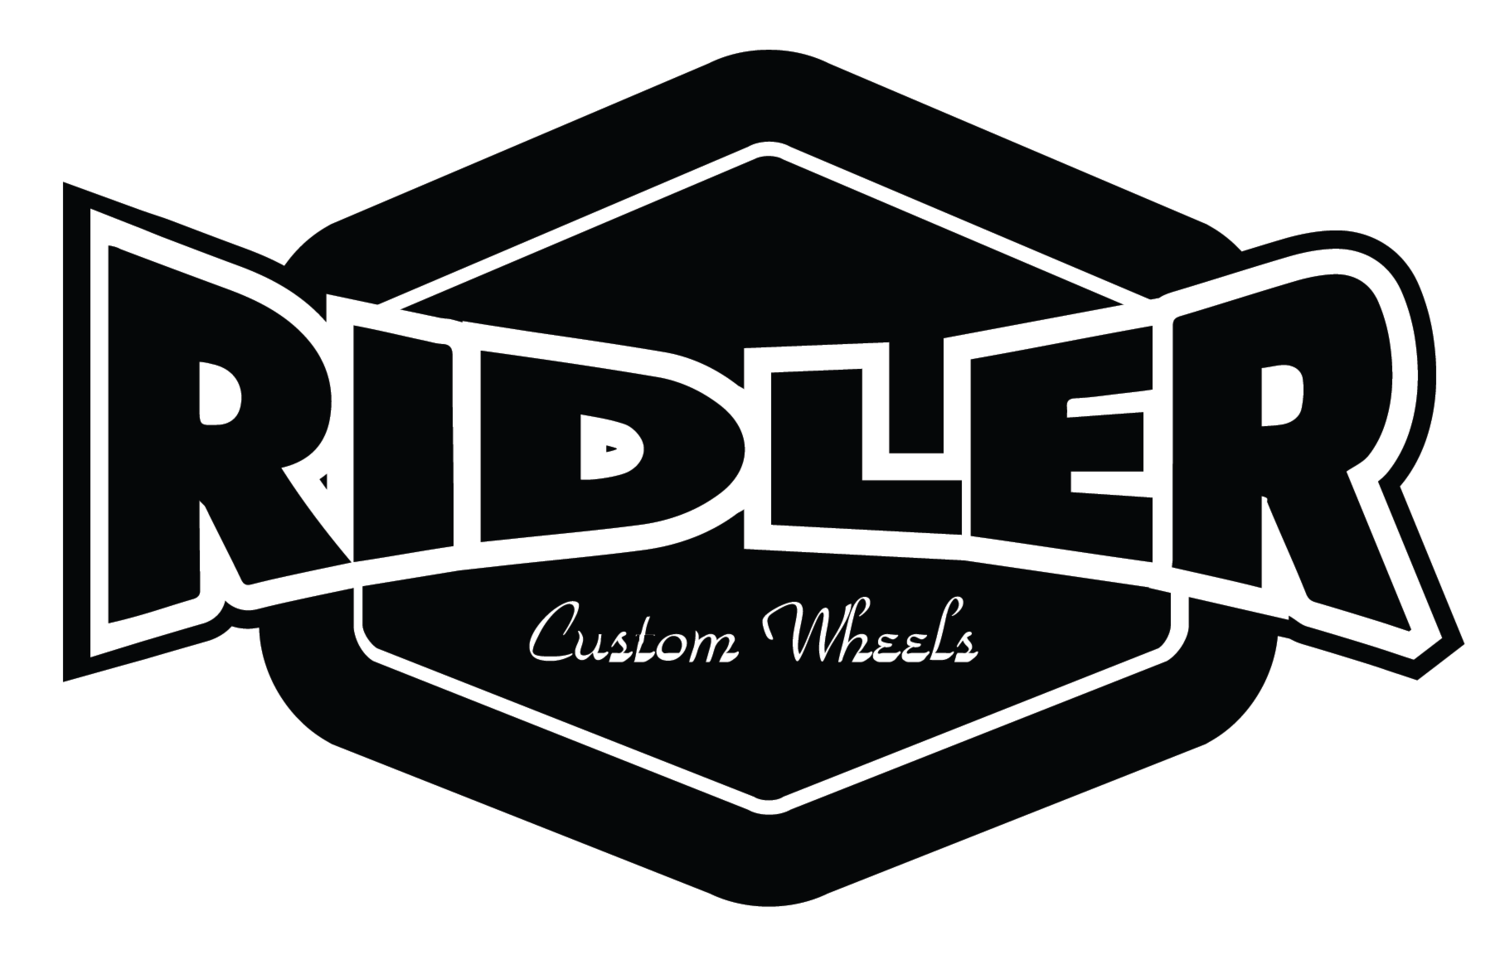 https://www.rc4wd.com/ProductImages/Logos/Ridler.png